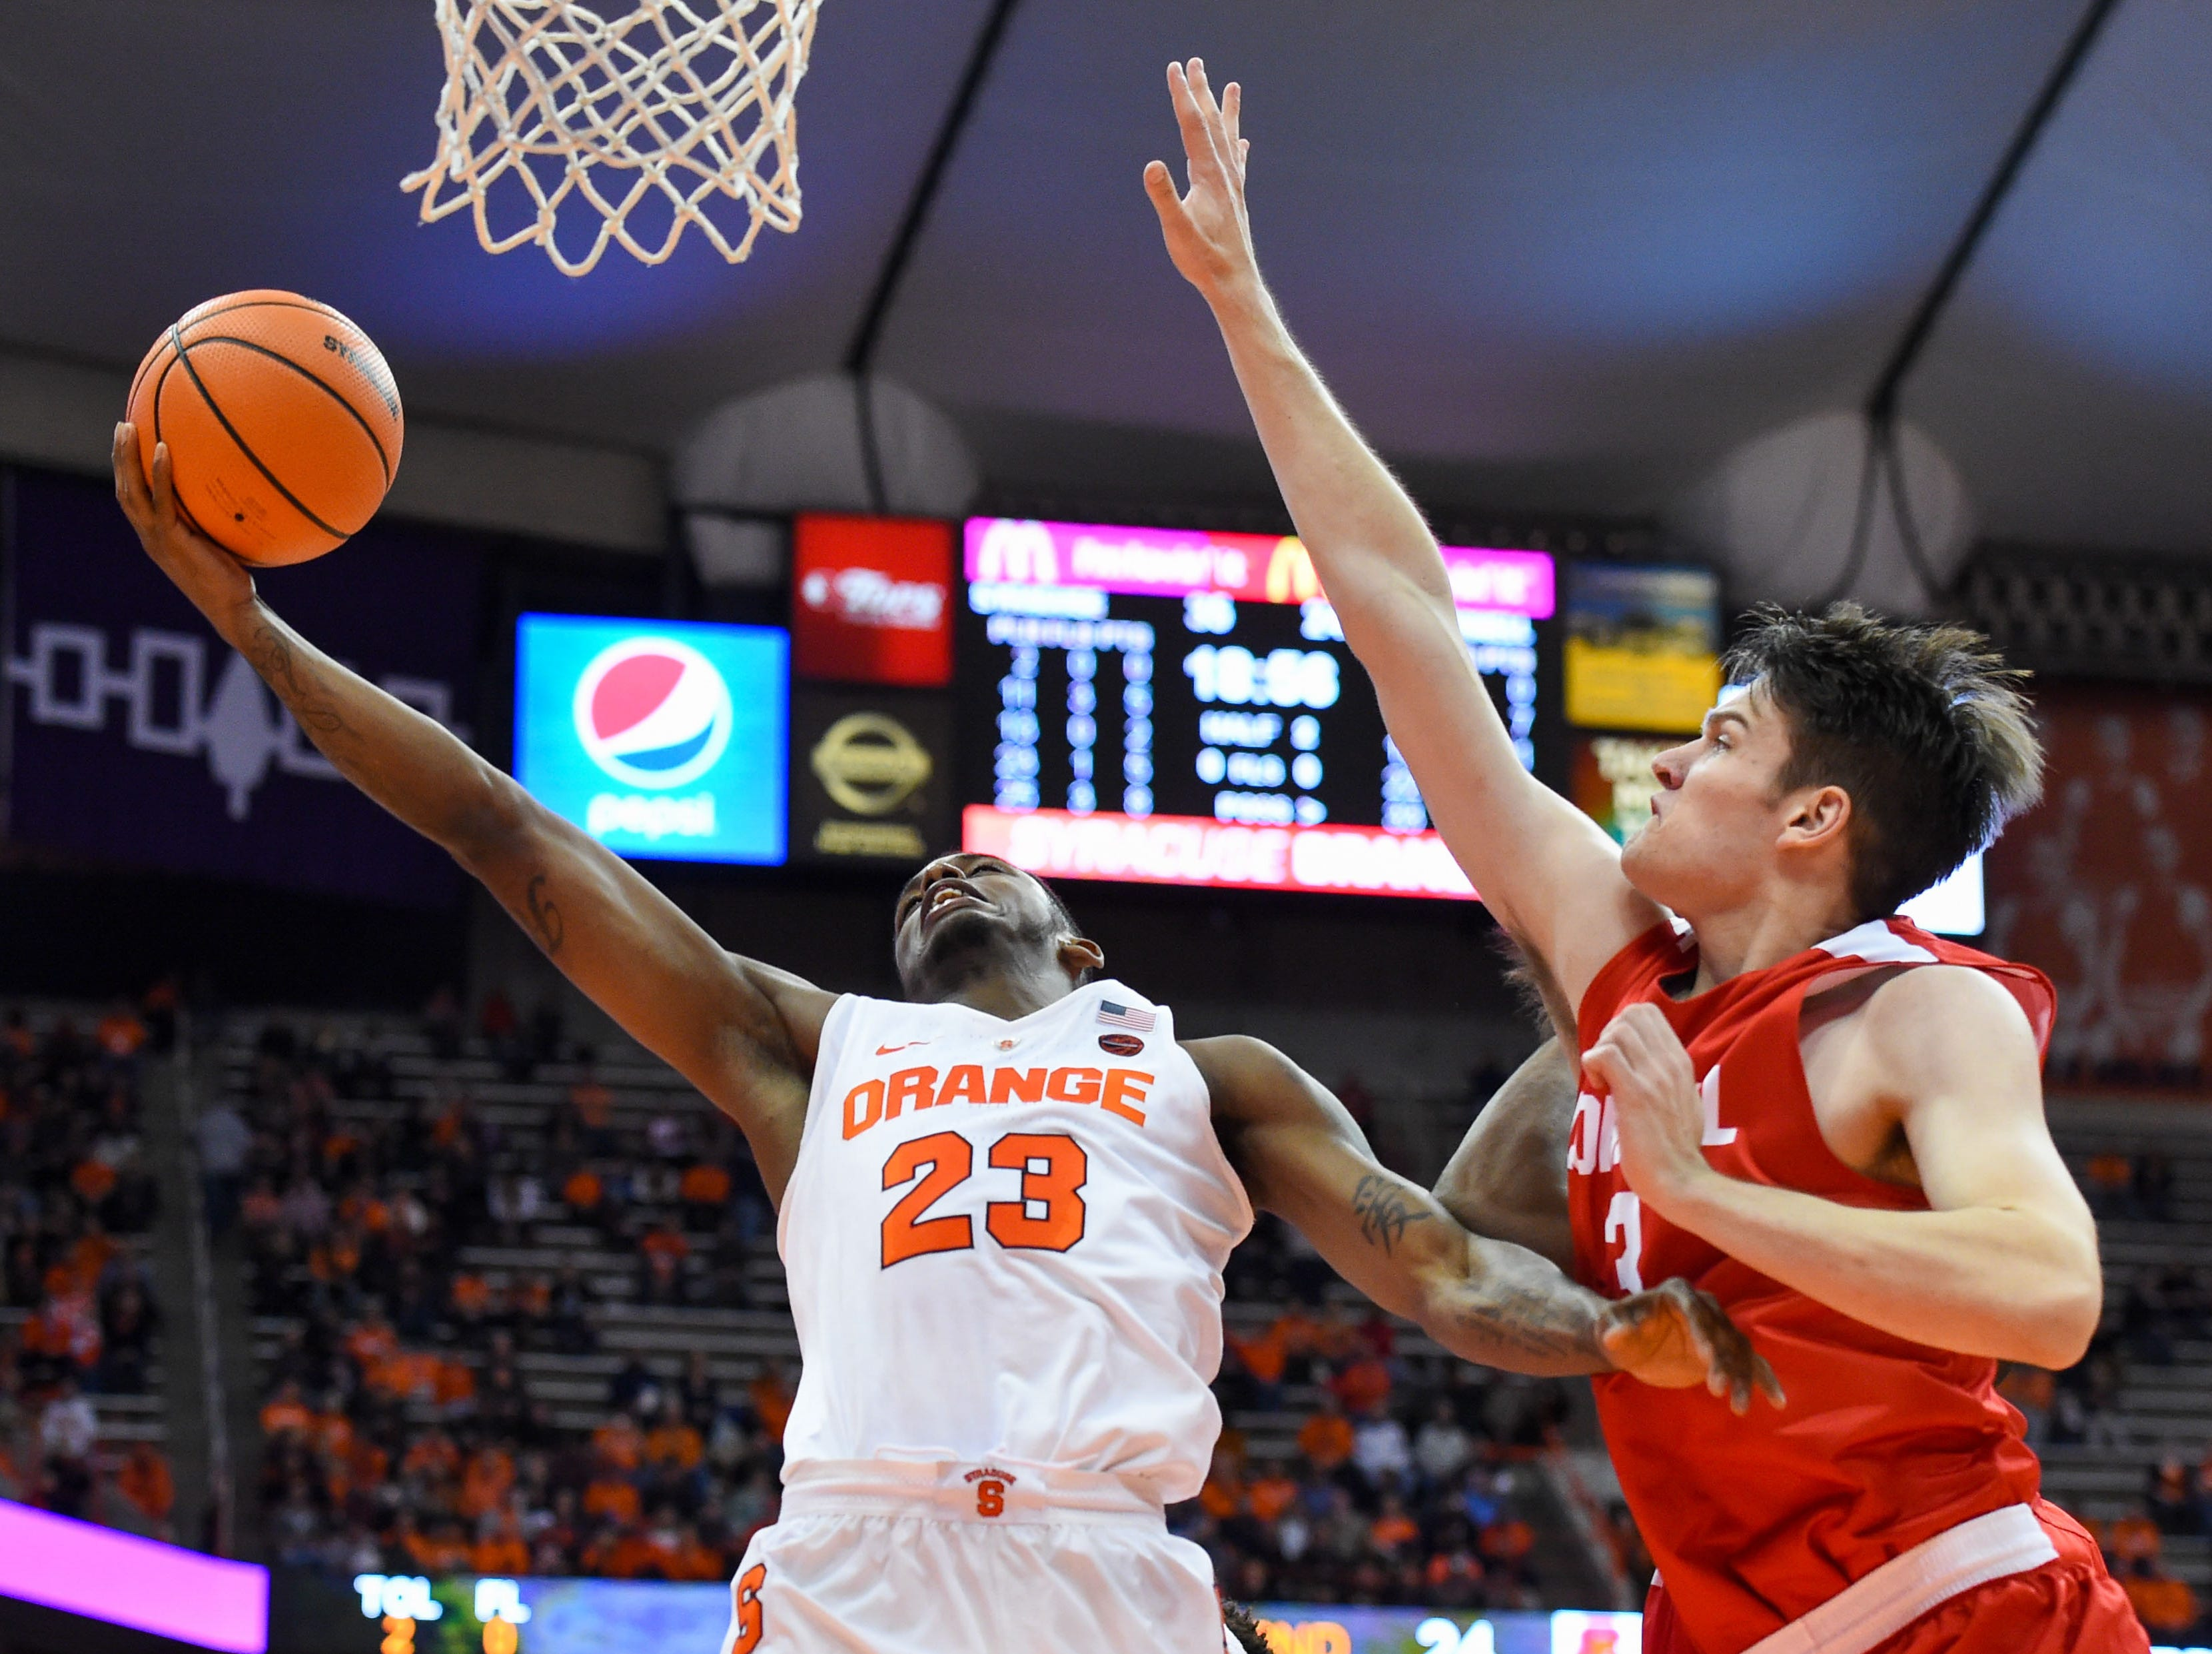 Nov 10, 2017; Syracuse, NY, USA; Syracuse Orange guard Frank Howard (23) shoots the ball around the defense of Cornell Big Red forward Jimmy Boeheim (3) during the second half at the Carrier Dome. Mandatory Credit: Rich Barnes-USA TODAY Sports